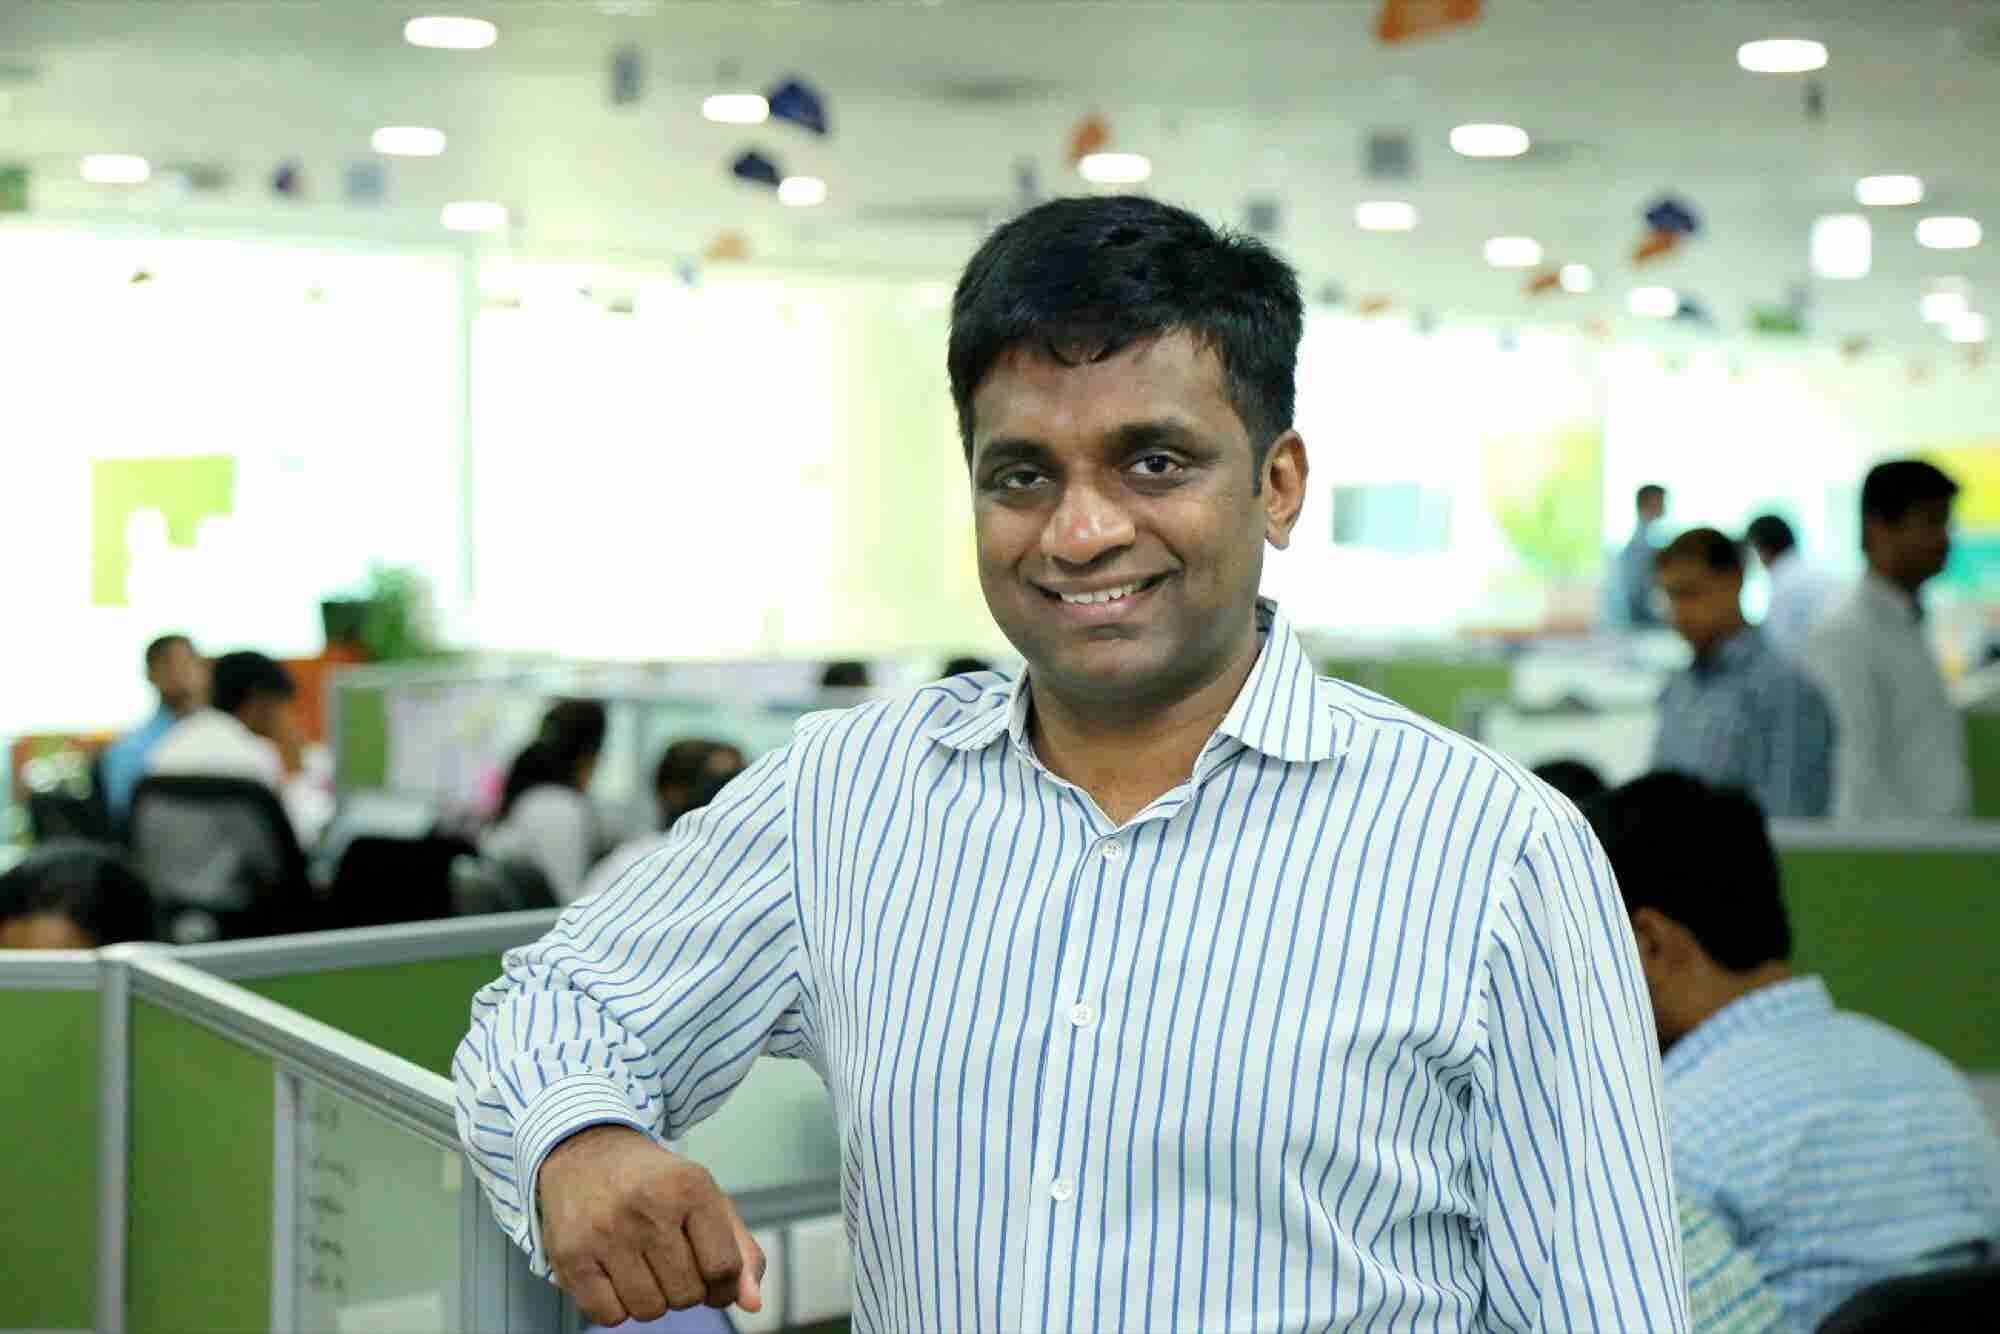 This Expert Shares His Know-how in the Field of Renewable Energy for Aspiring Entrepreneurs